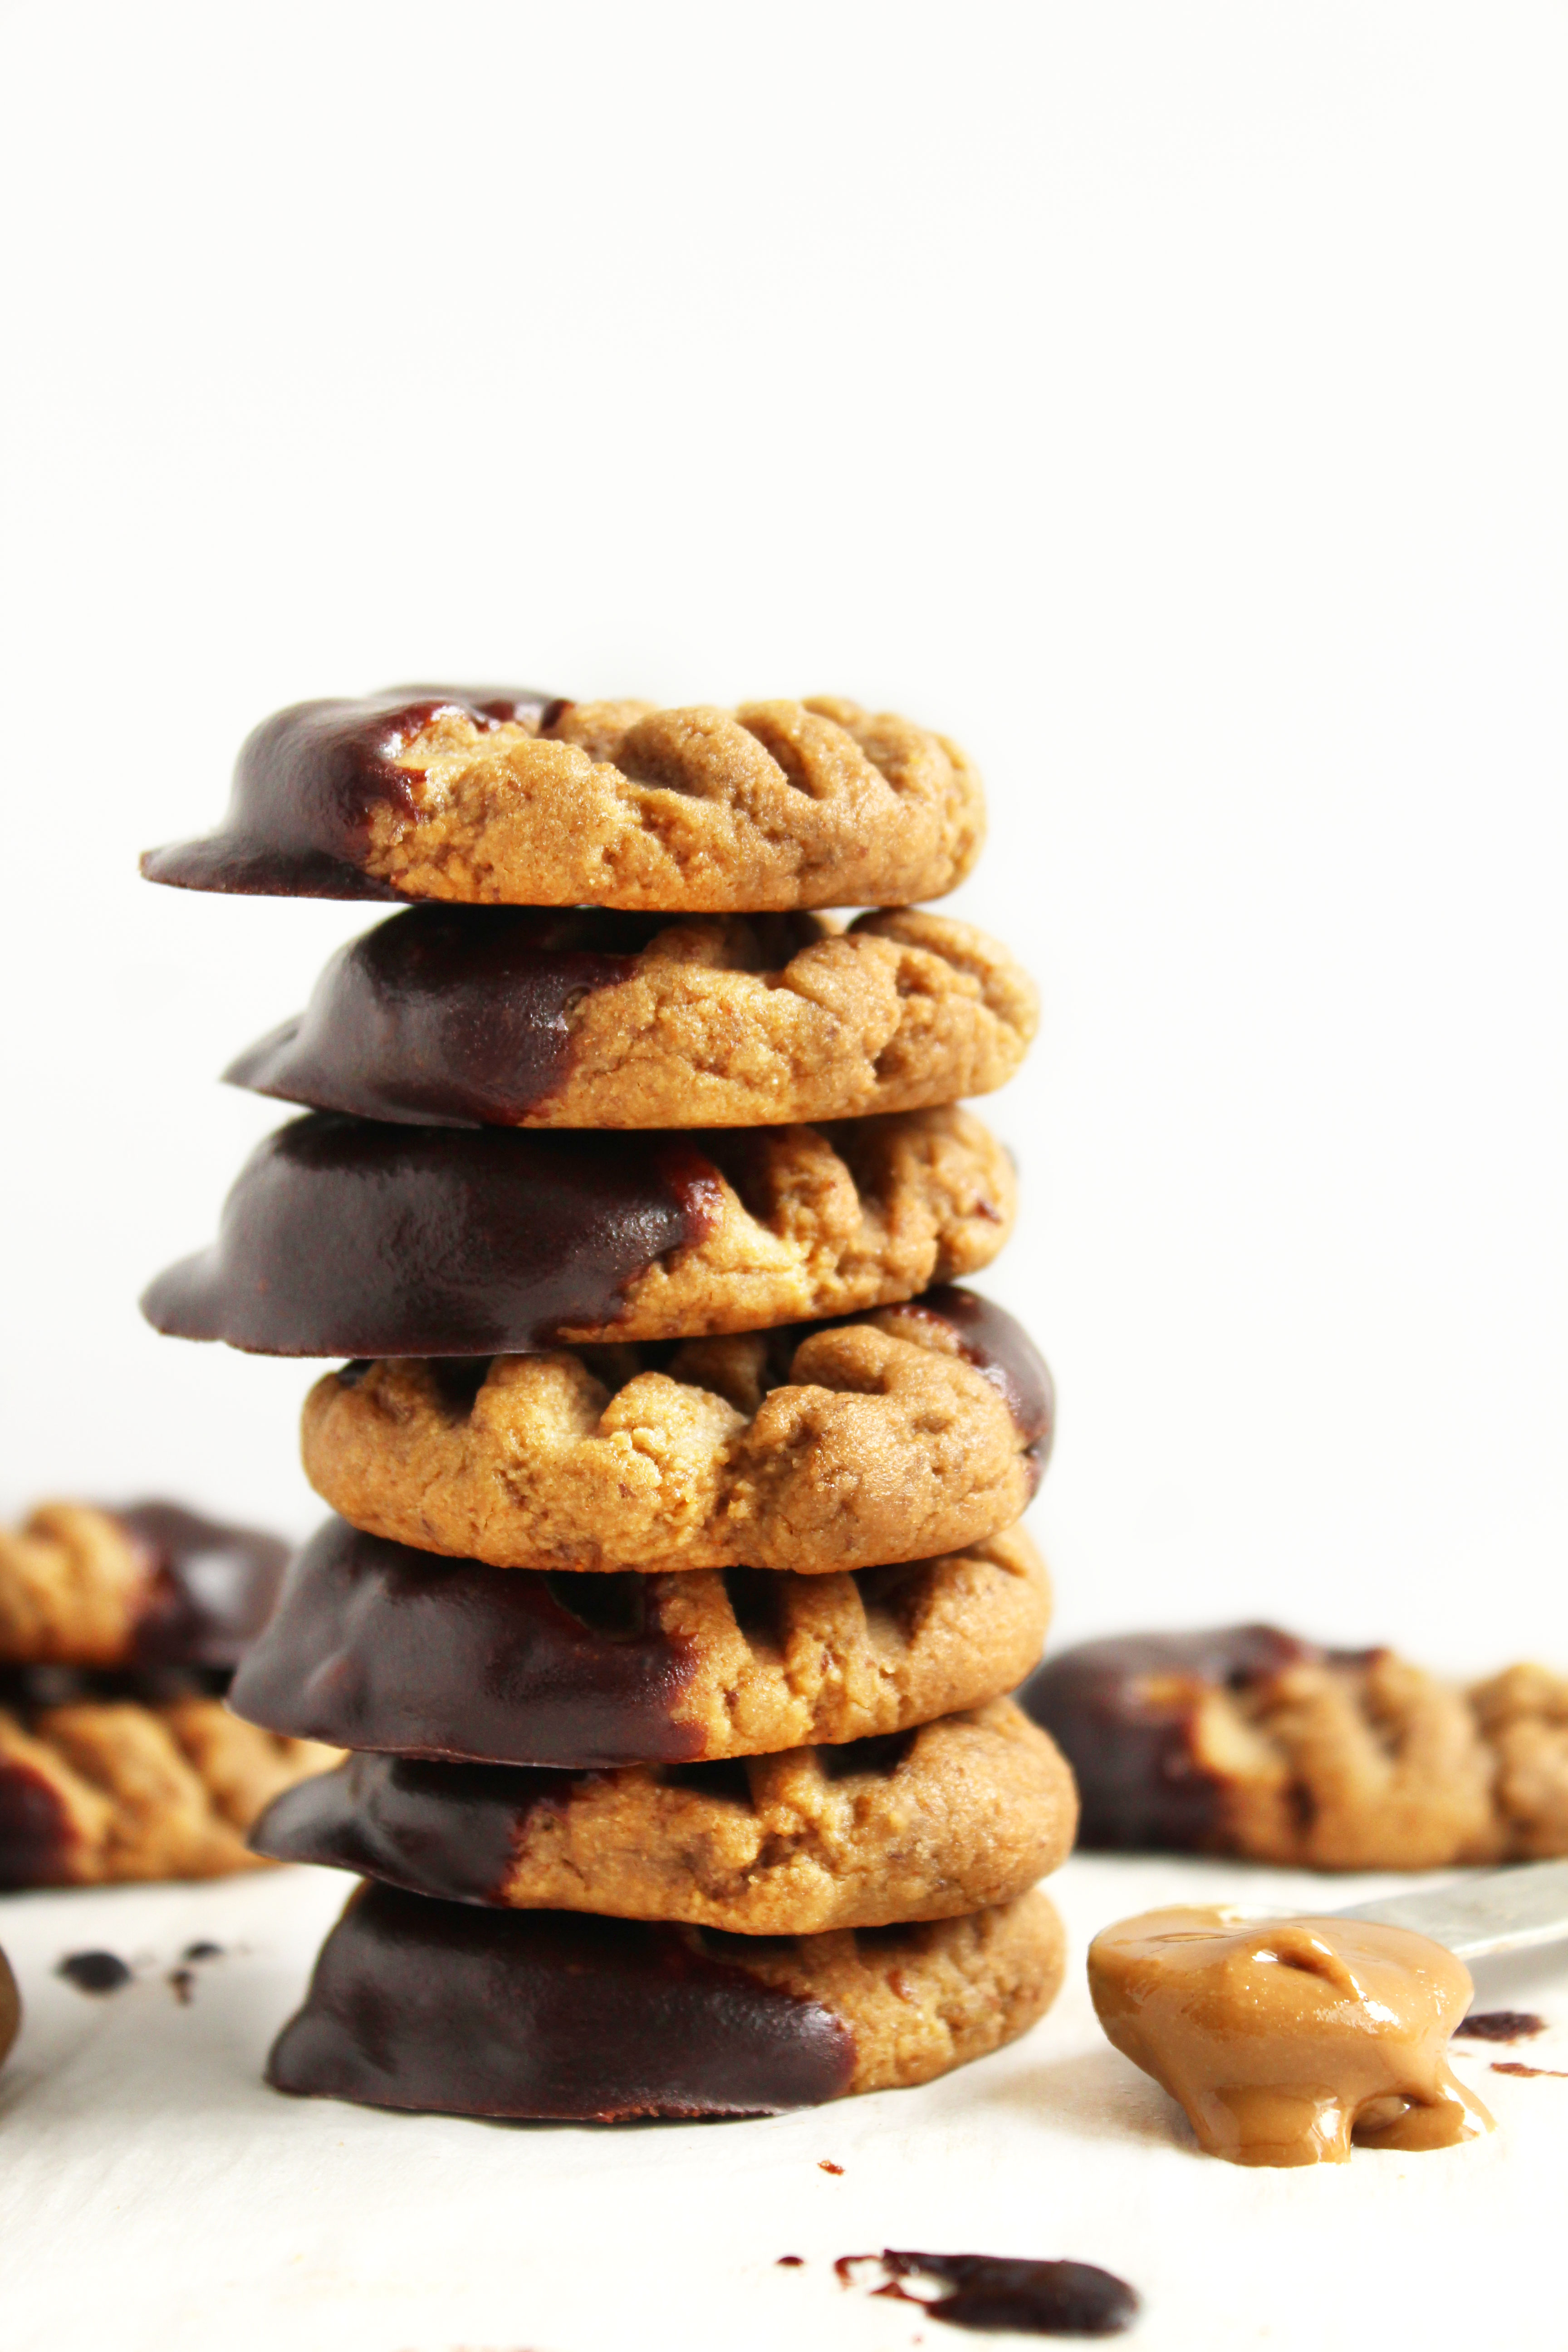 Chewy Chocolate Dipped Sunbutter Cookies (V + GF)! SUPER chewy, peanut-buttery, and delicious! Will cure any peanut butter/chocolate craving! #vegan #glutenfree #cookies   Peachandthecobbler.com